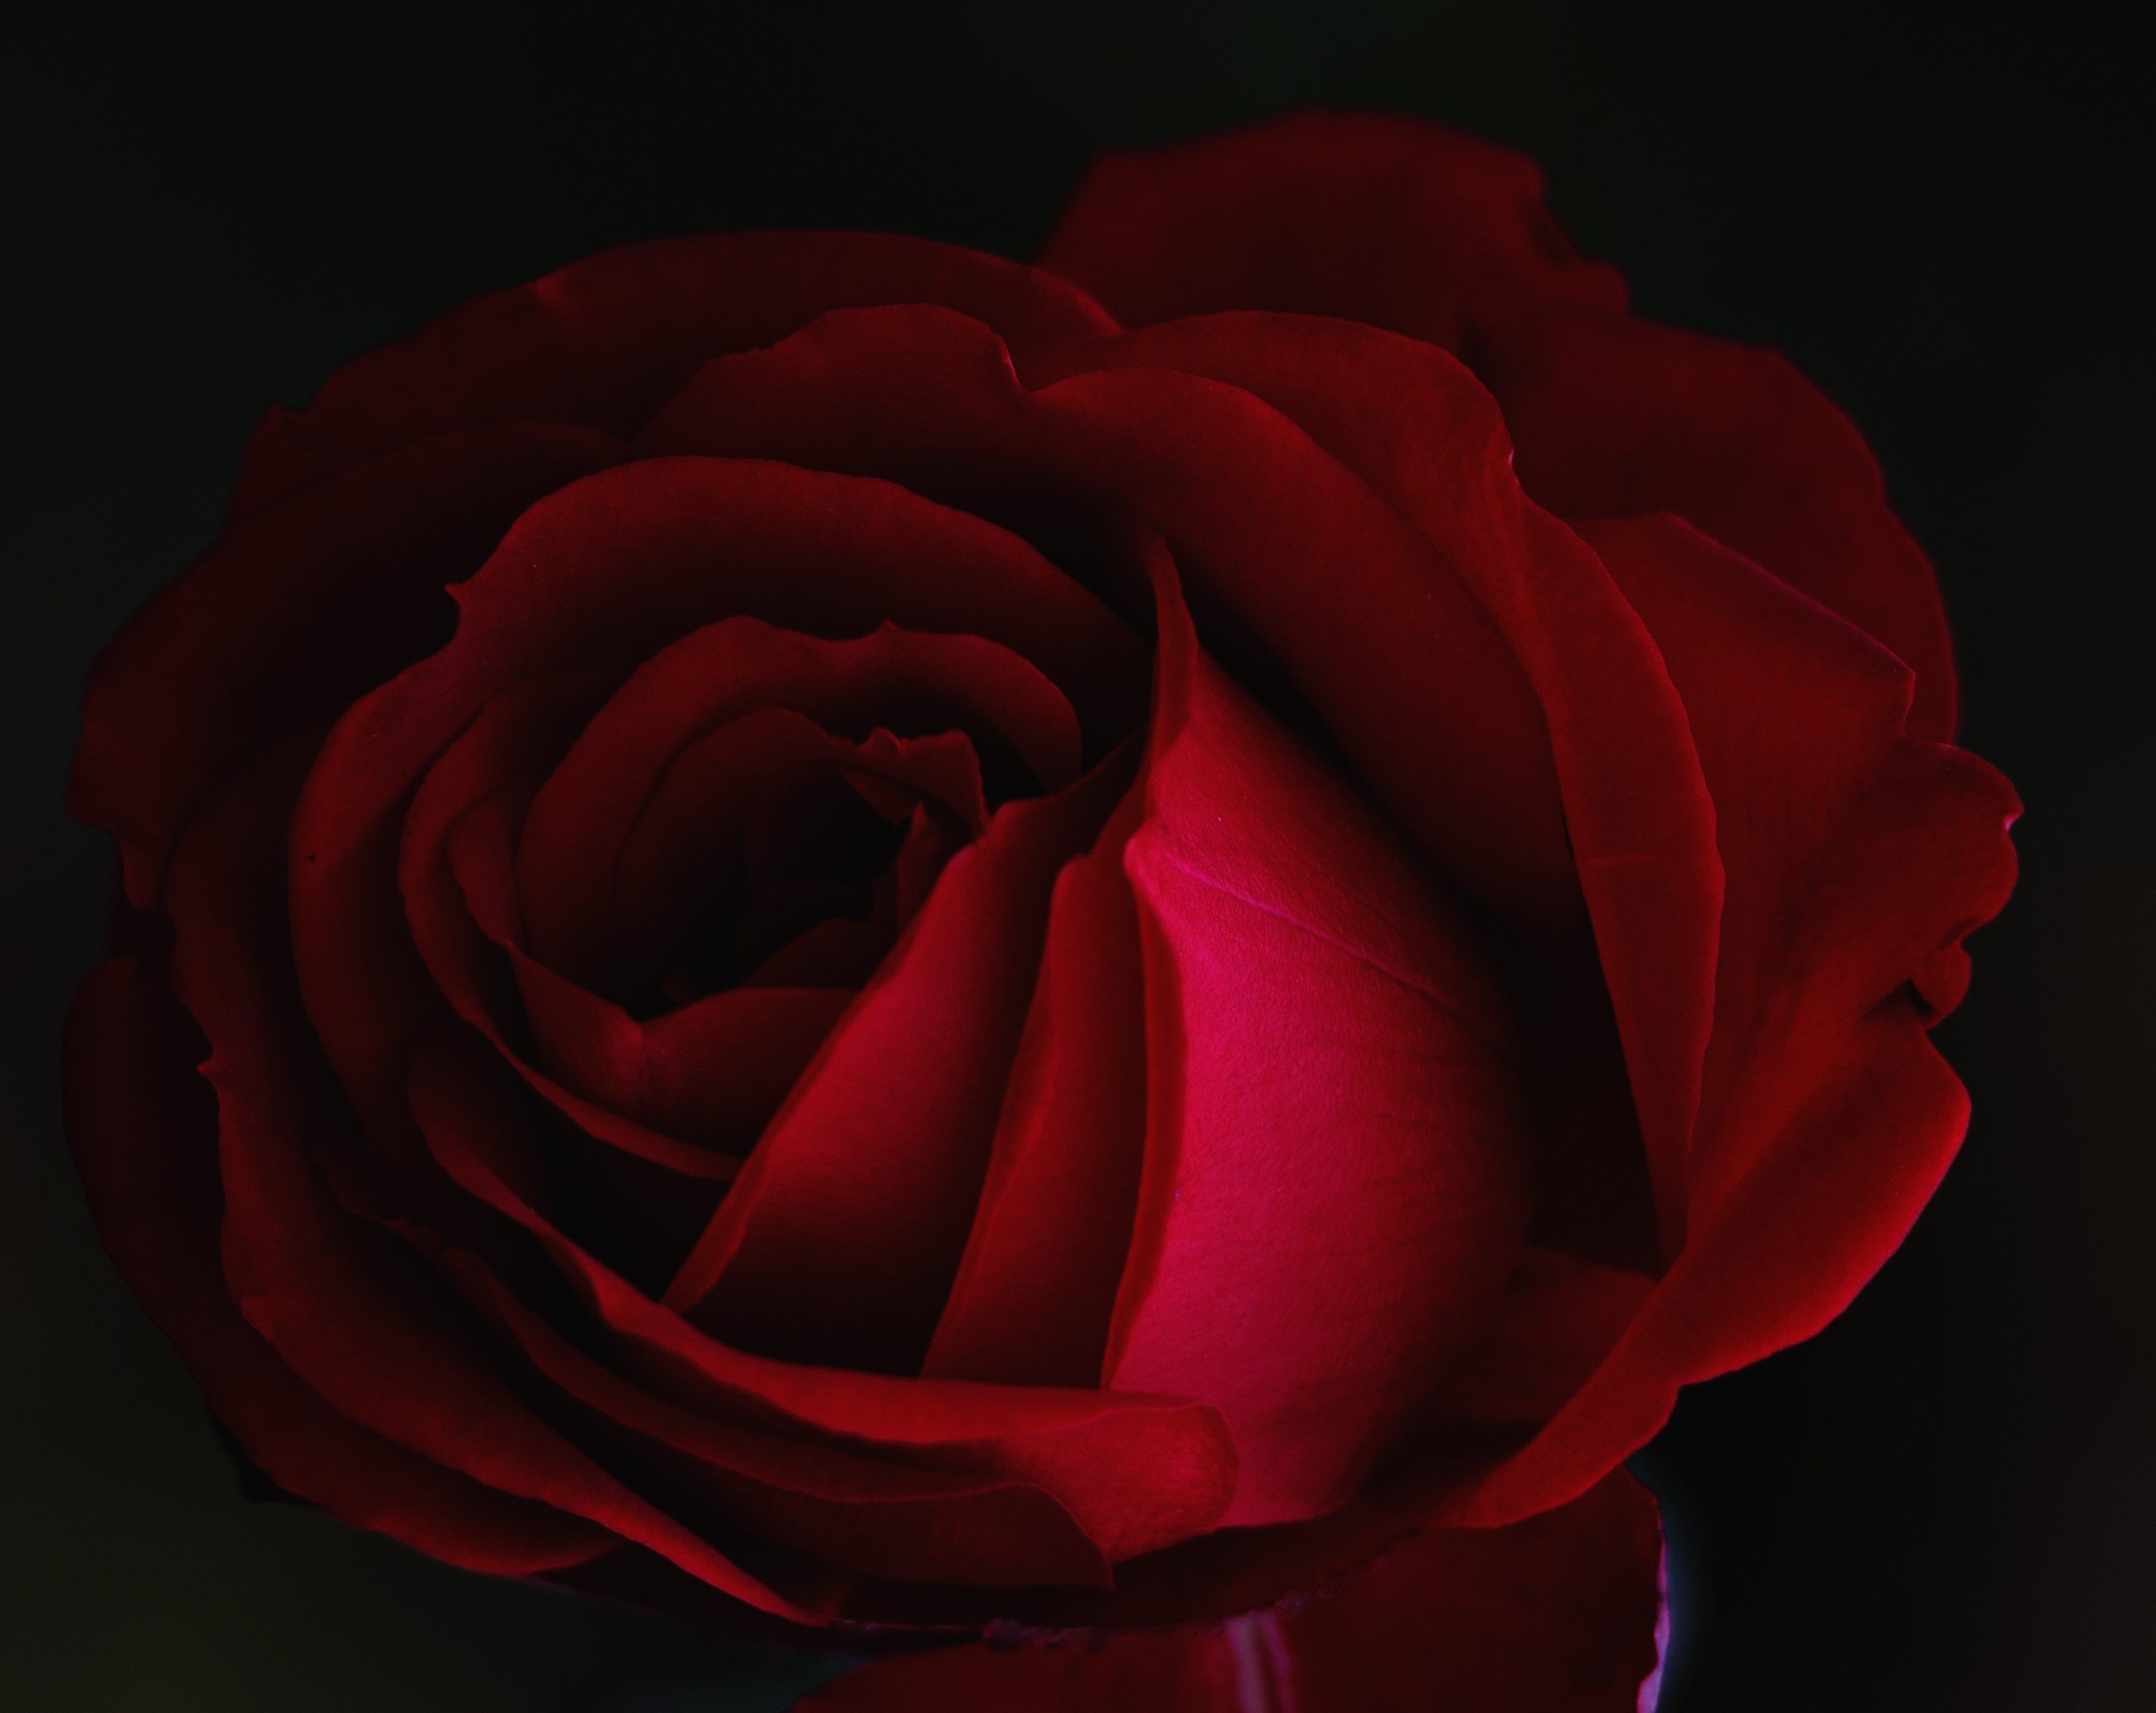 Canva - Red rose close up